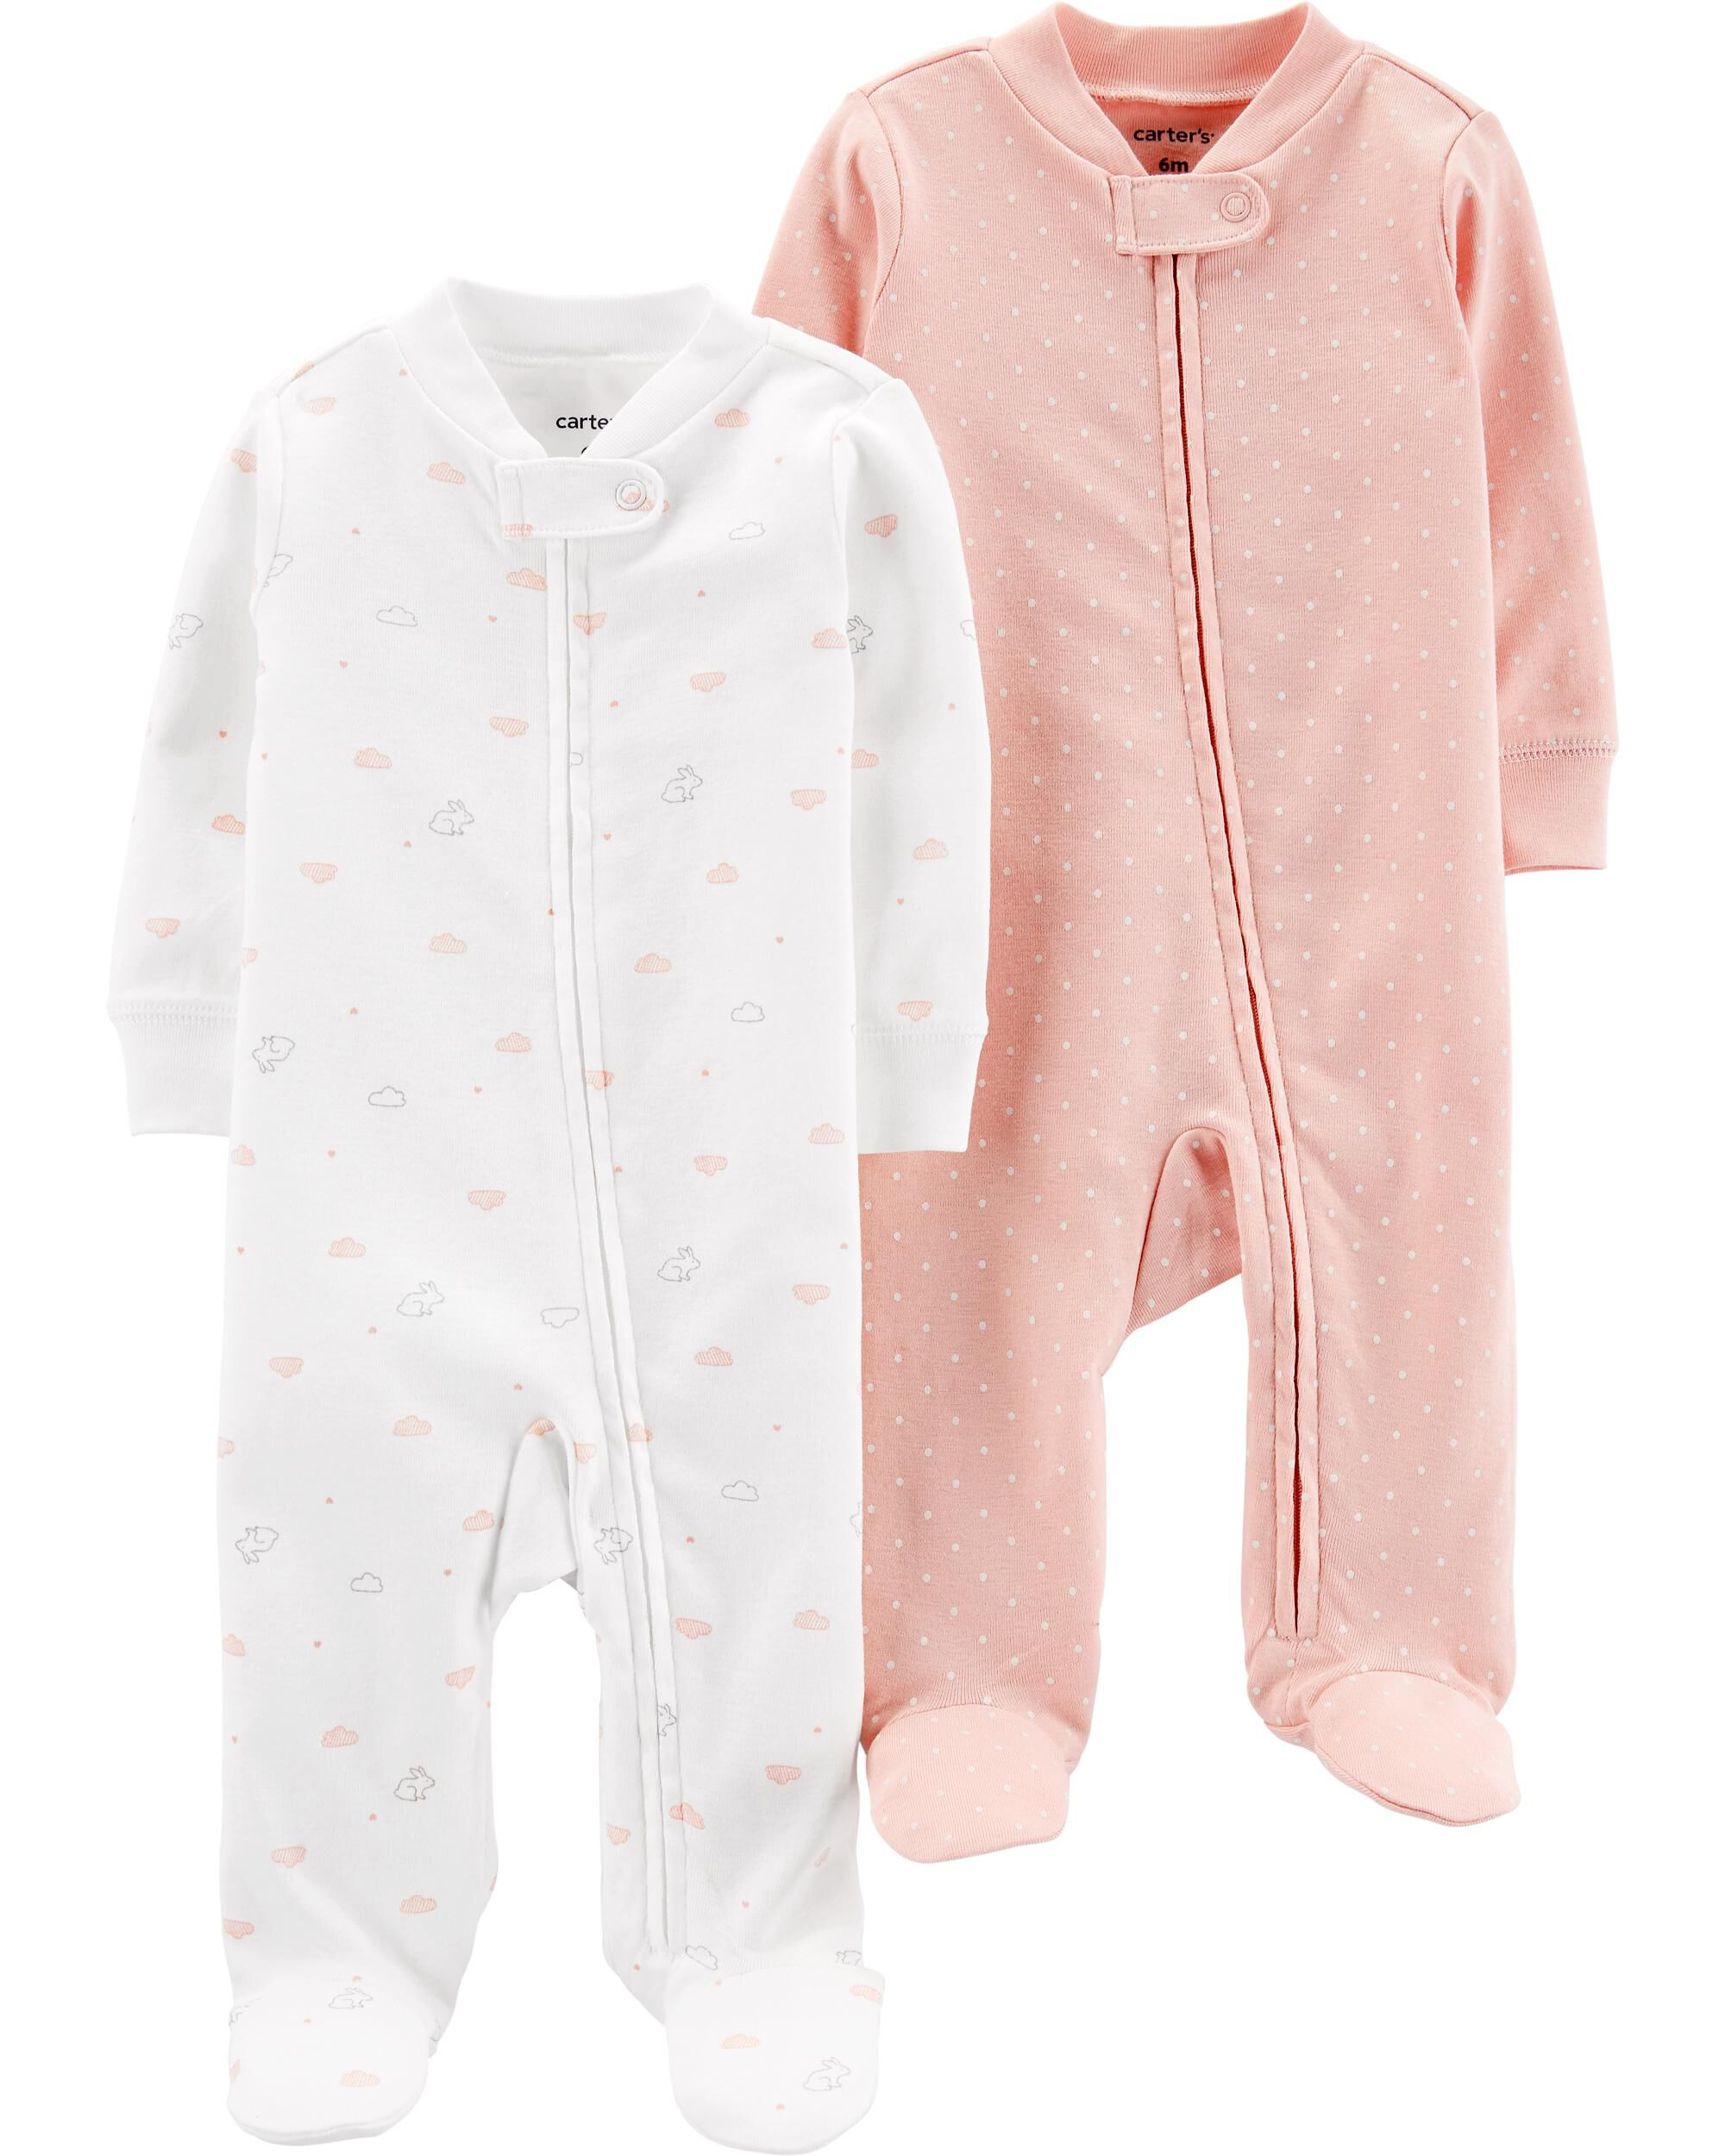 Carters Baby-Girls 2-Pack Cotton Sleep and Play Romper